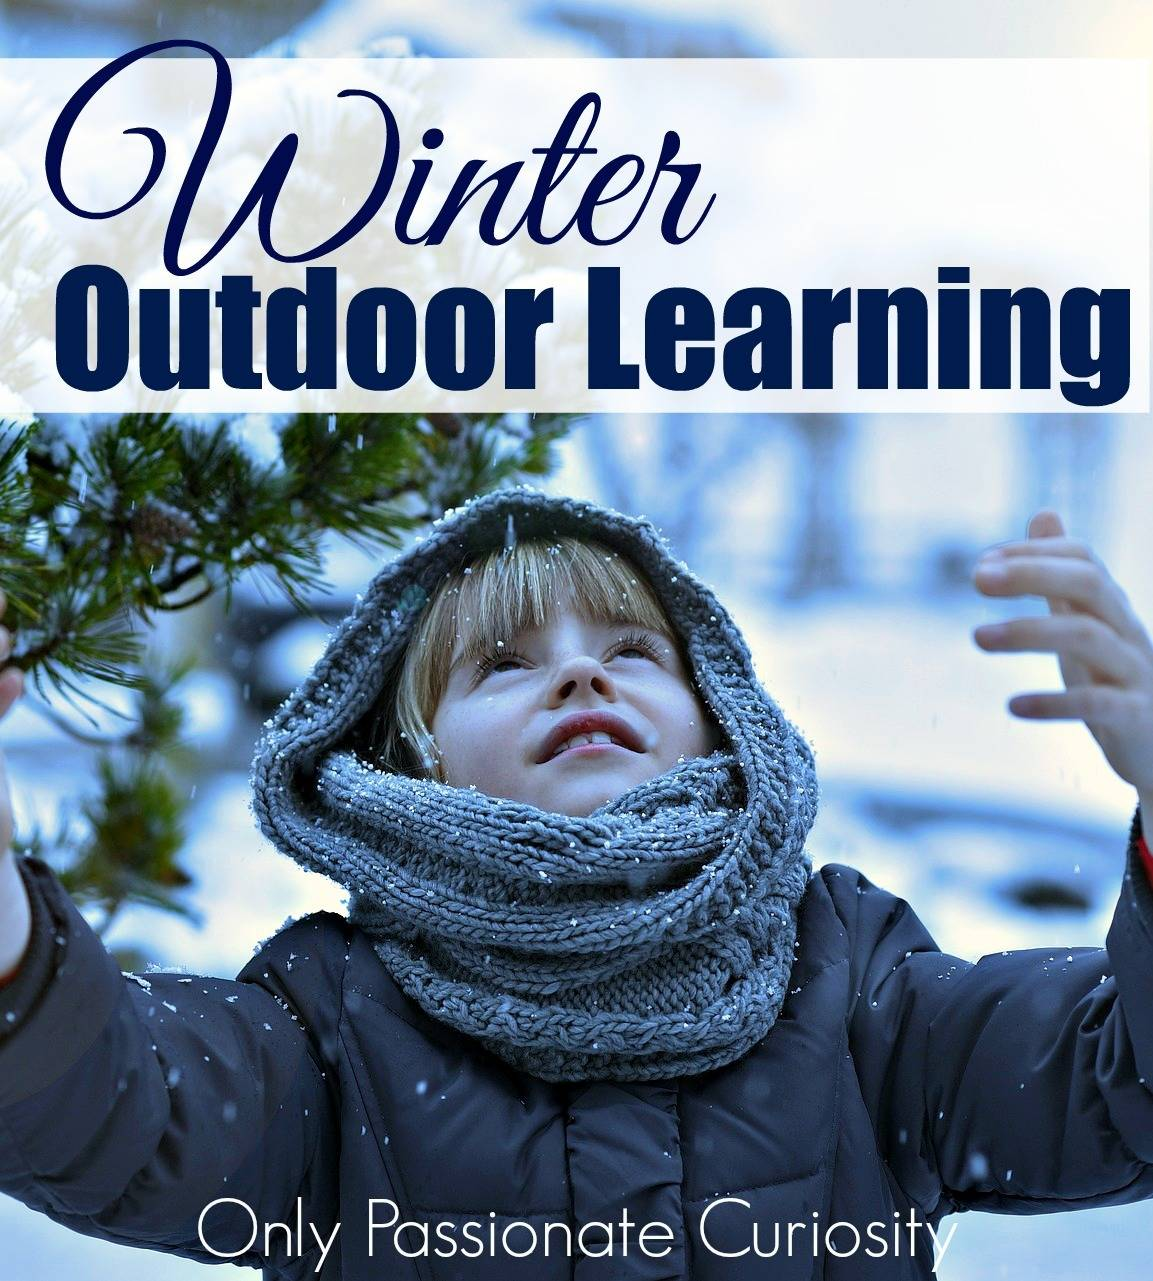 Who Says You Can't Learn Outdoors in Winter?